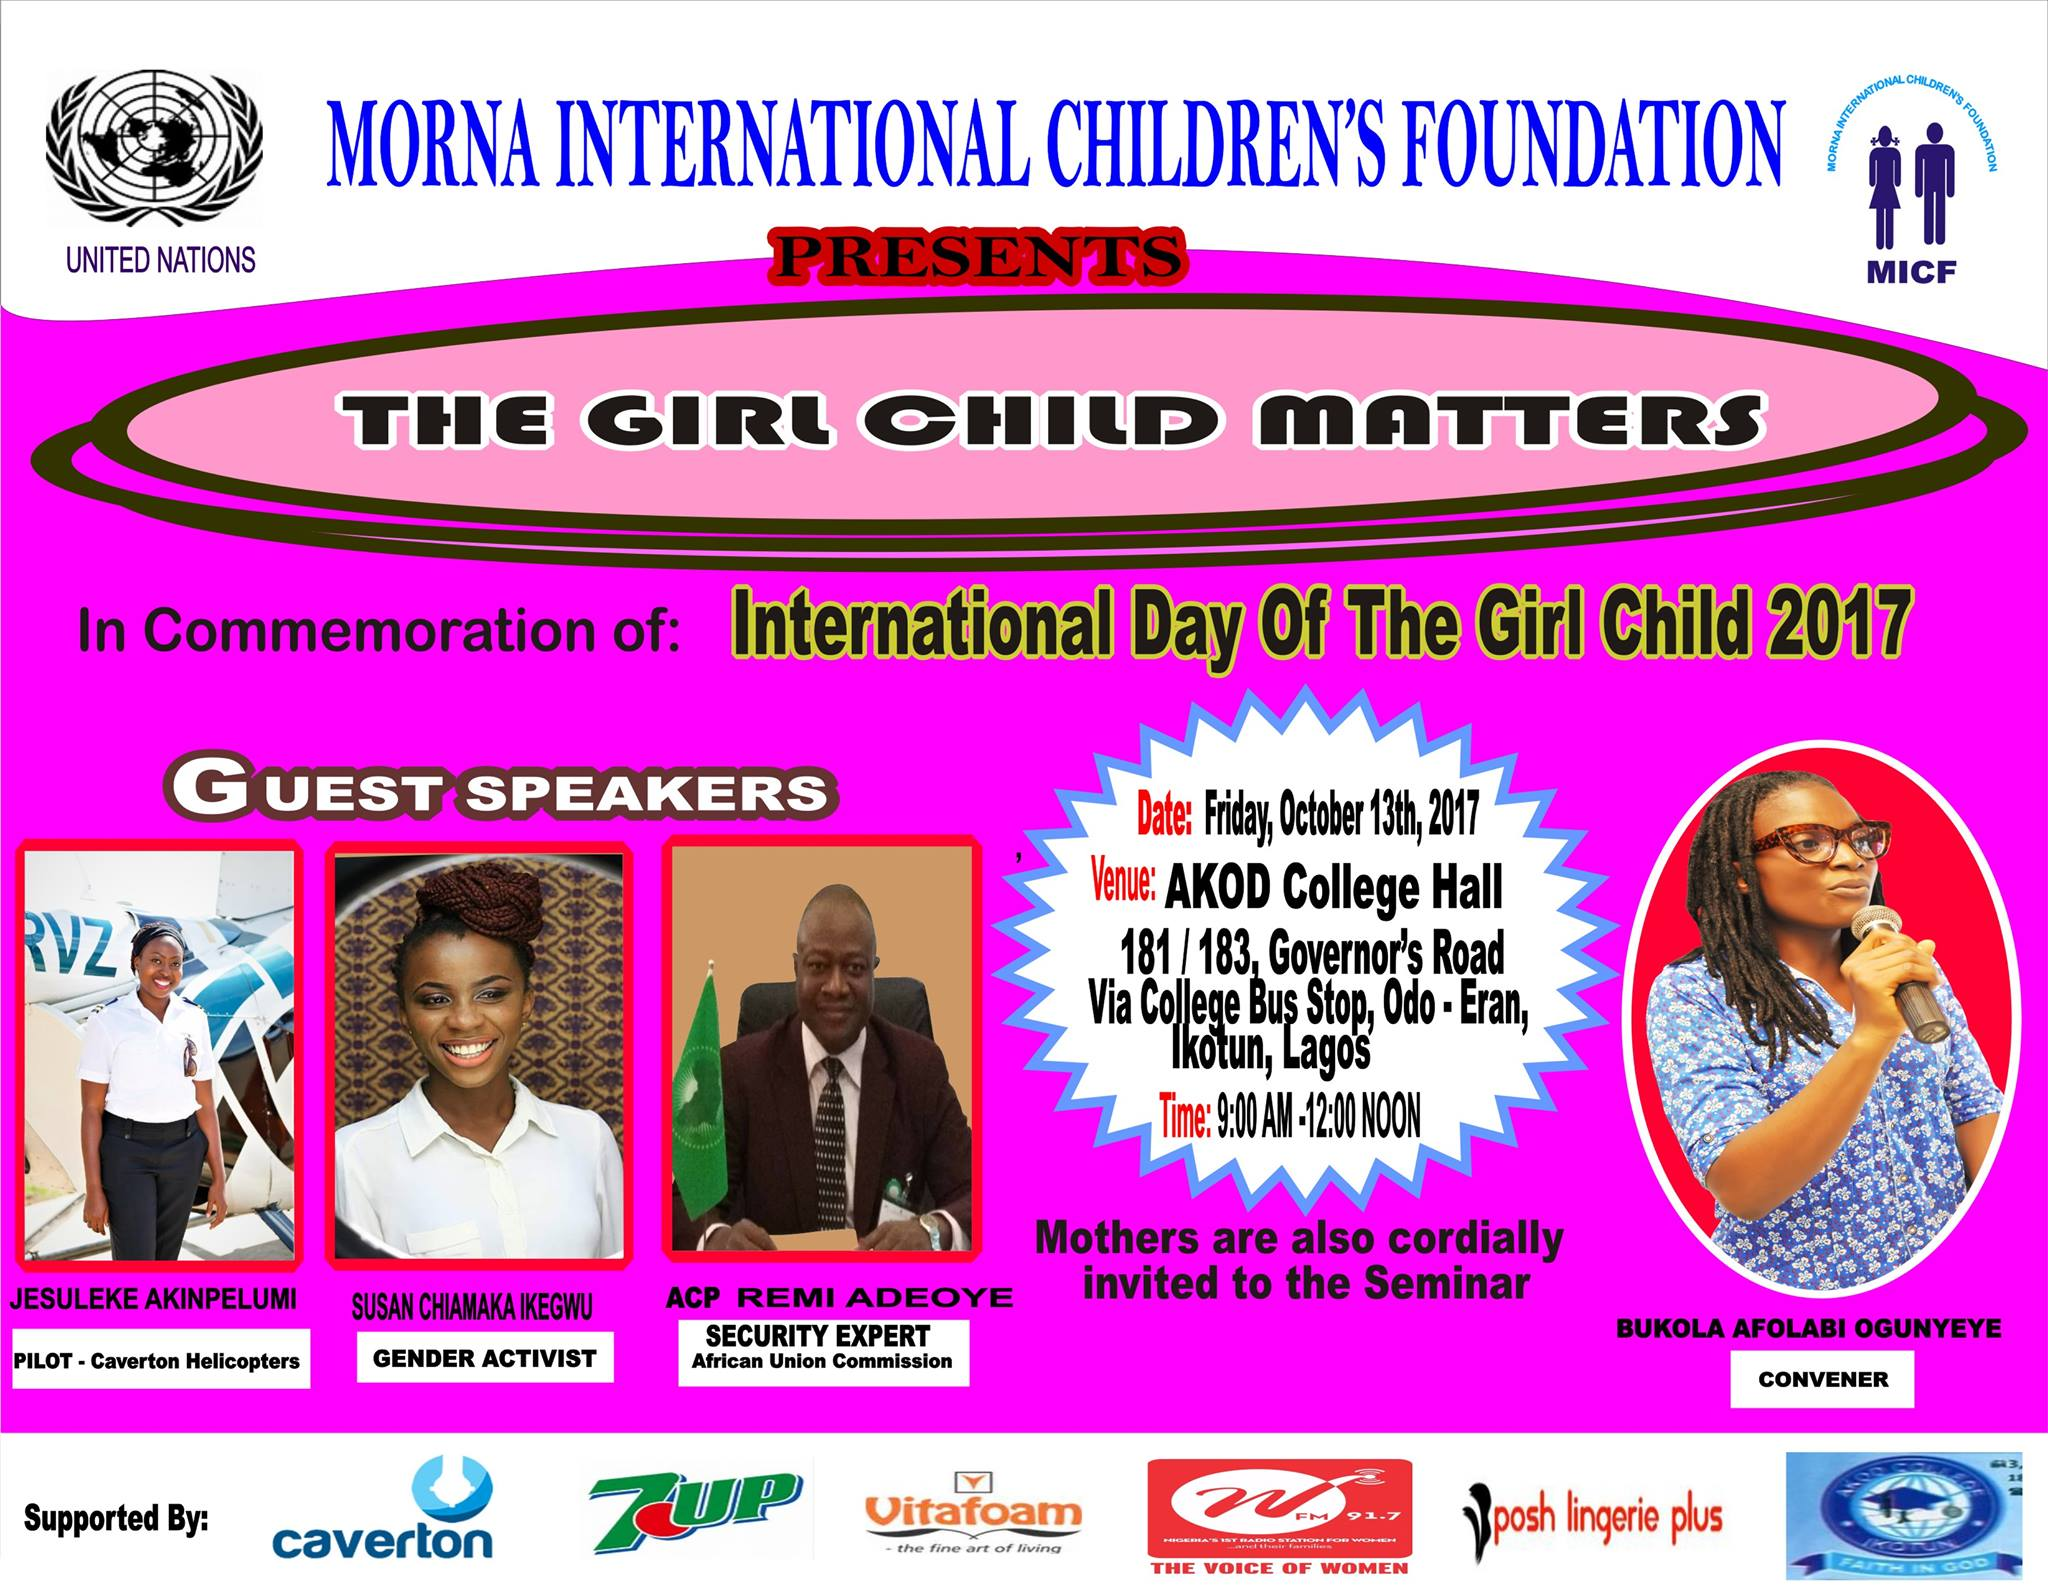 THE GIRL CHILD MATTERS